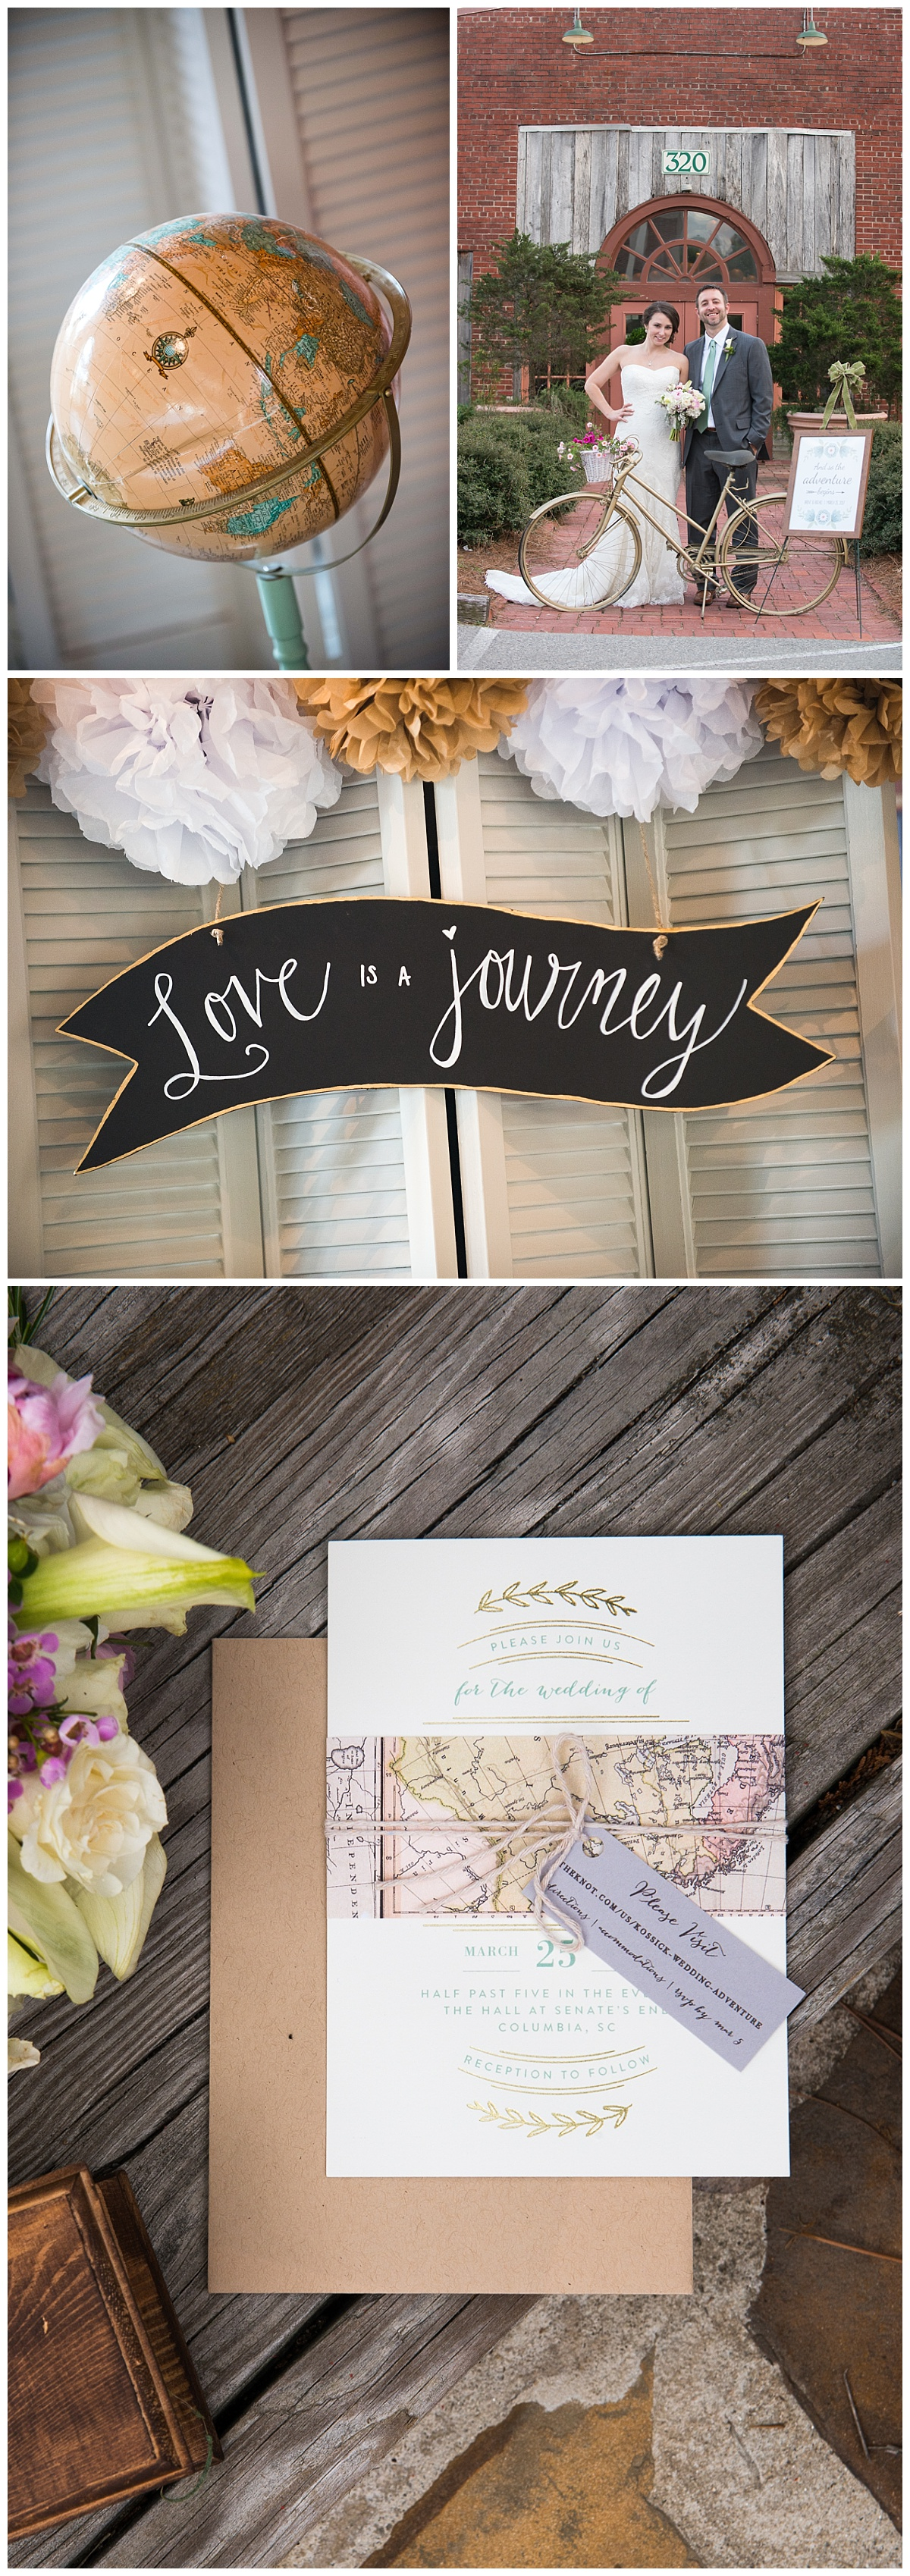 Rachel and Brent's love is a journey wedding theme at Senate's End